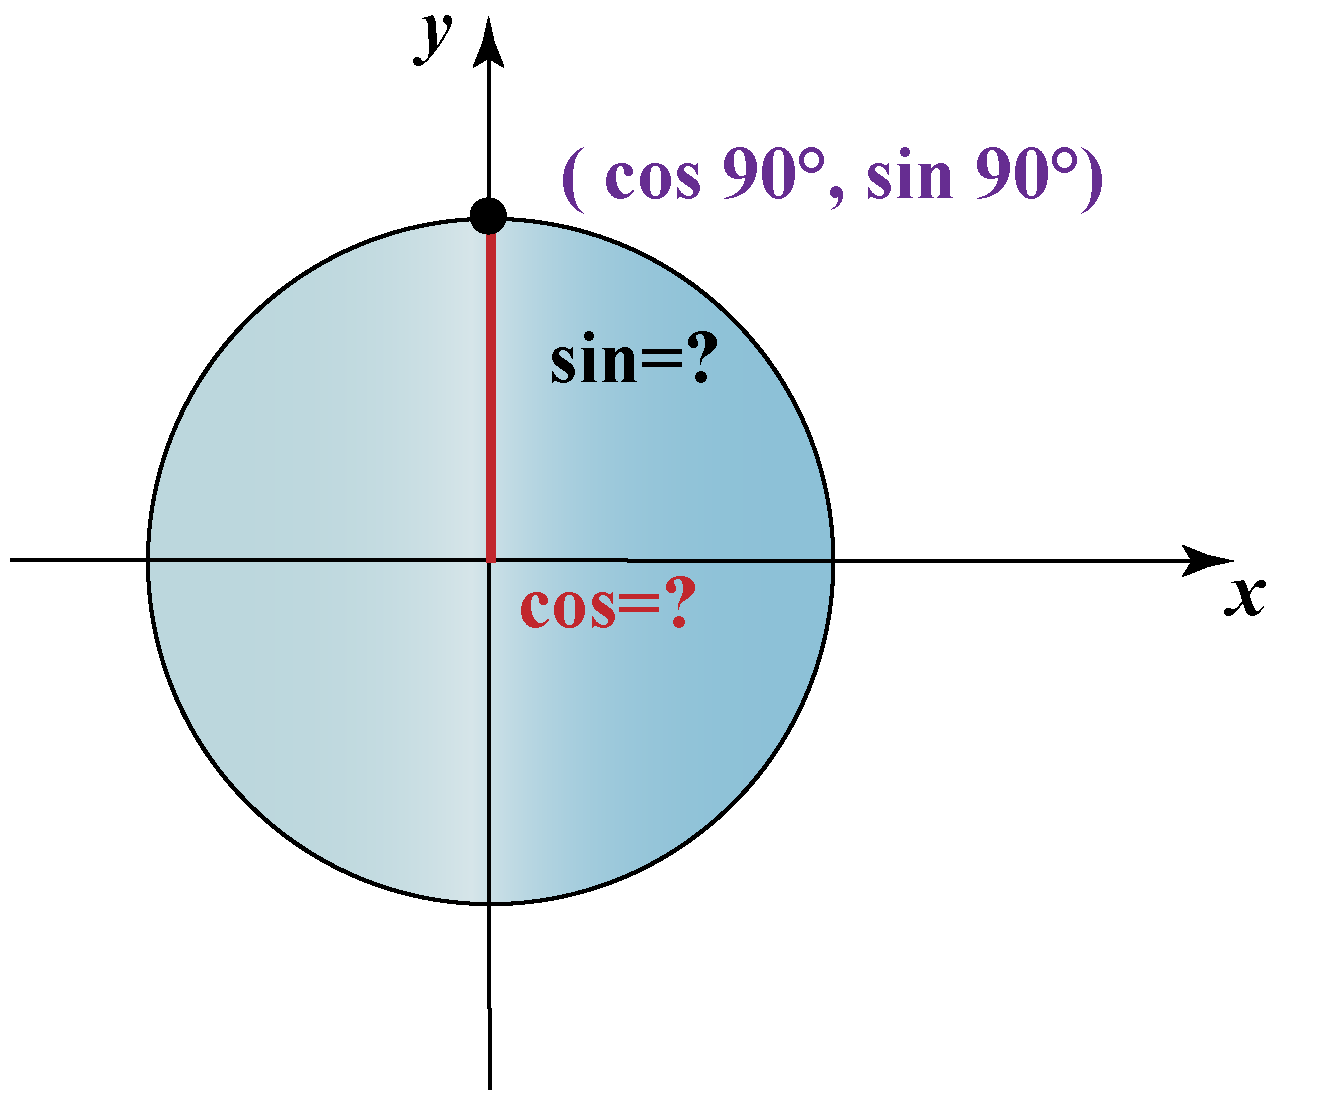 cos 90 and sin 90 value from the unit circle graph